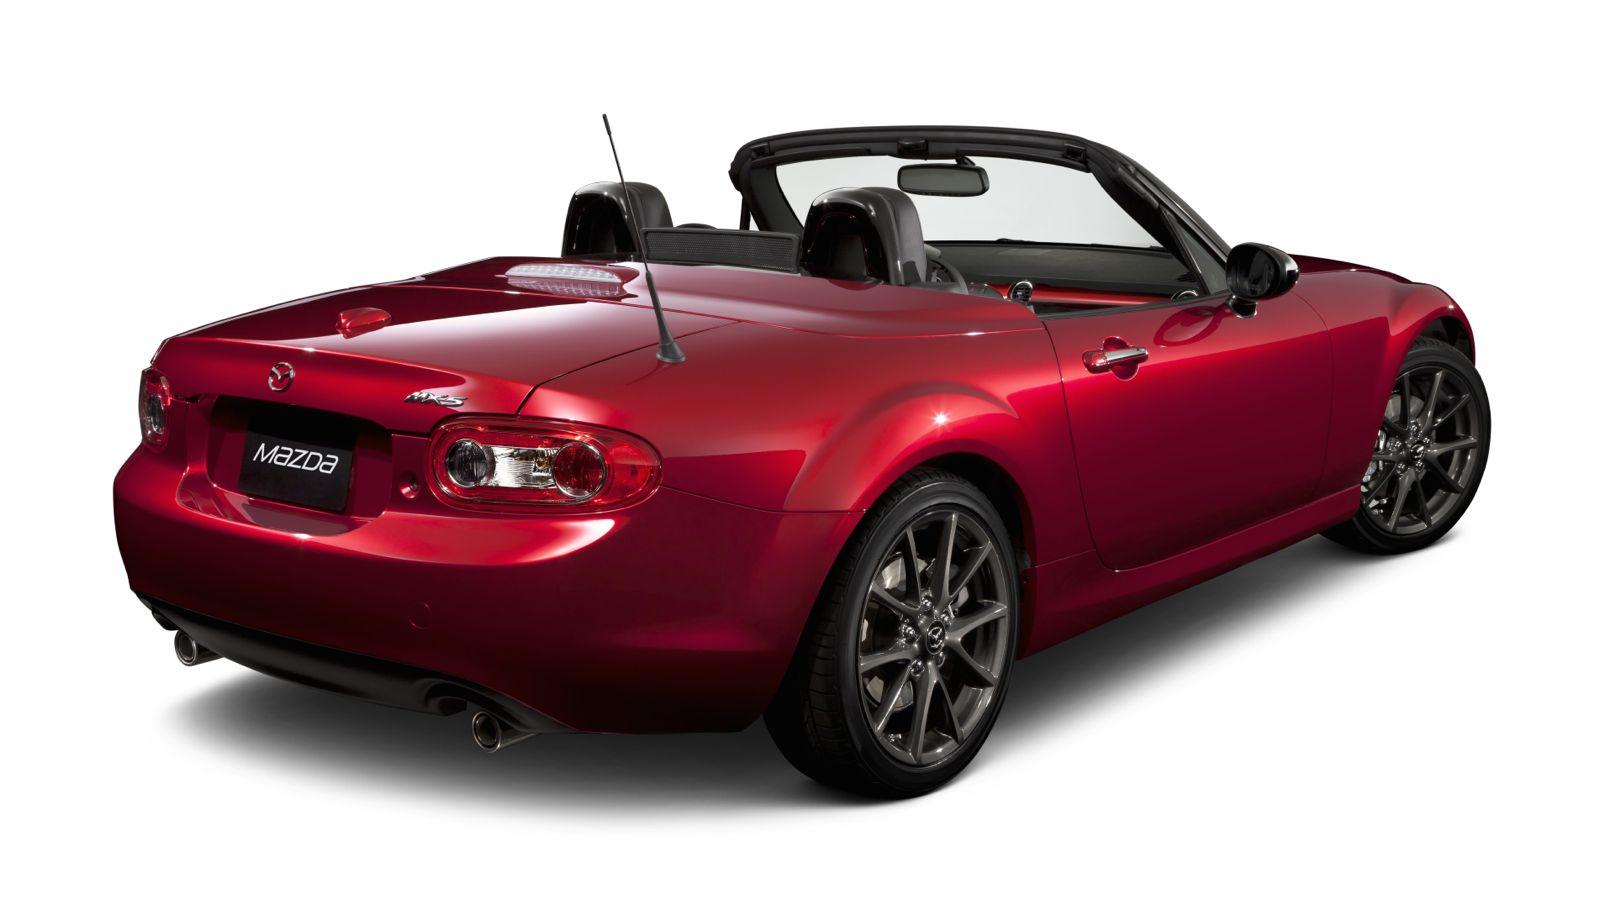 2014 mazda mx 5 25th anniversary pricing announced photos 1 of 6. Black Bedroom Furniture Sets. Home Design Ideas